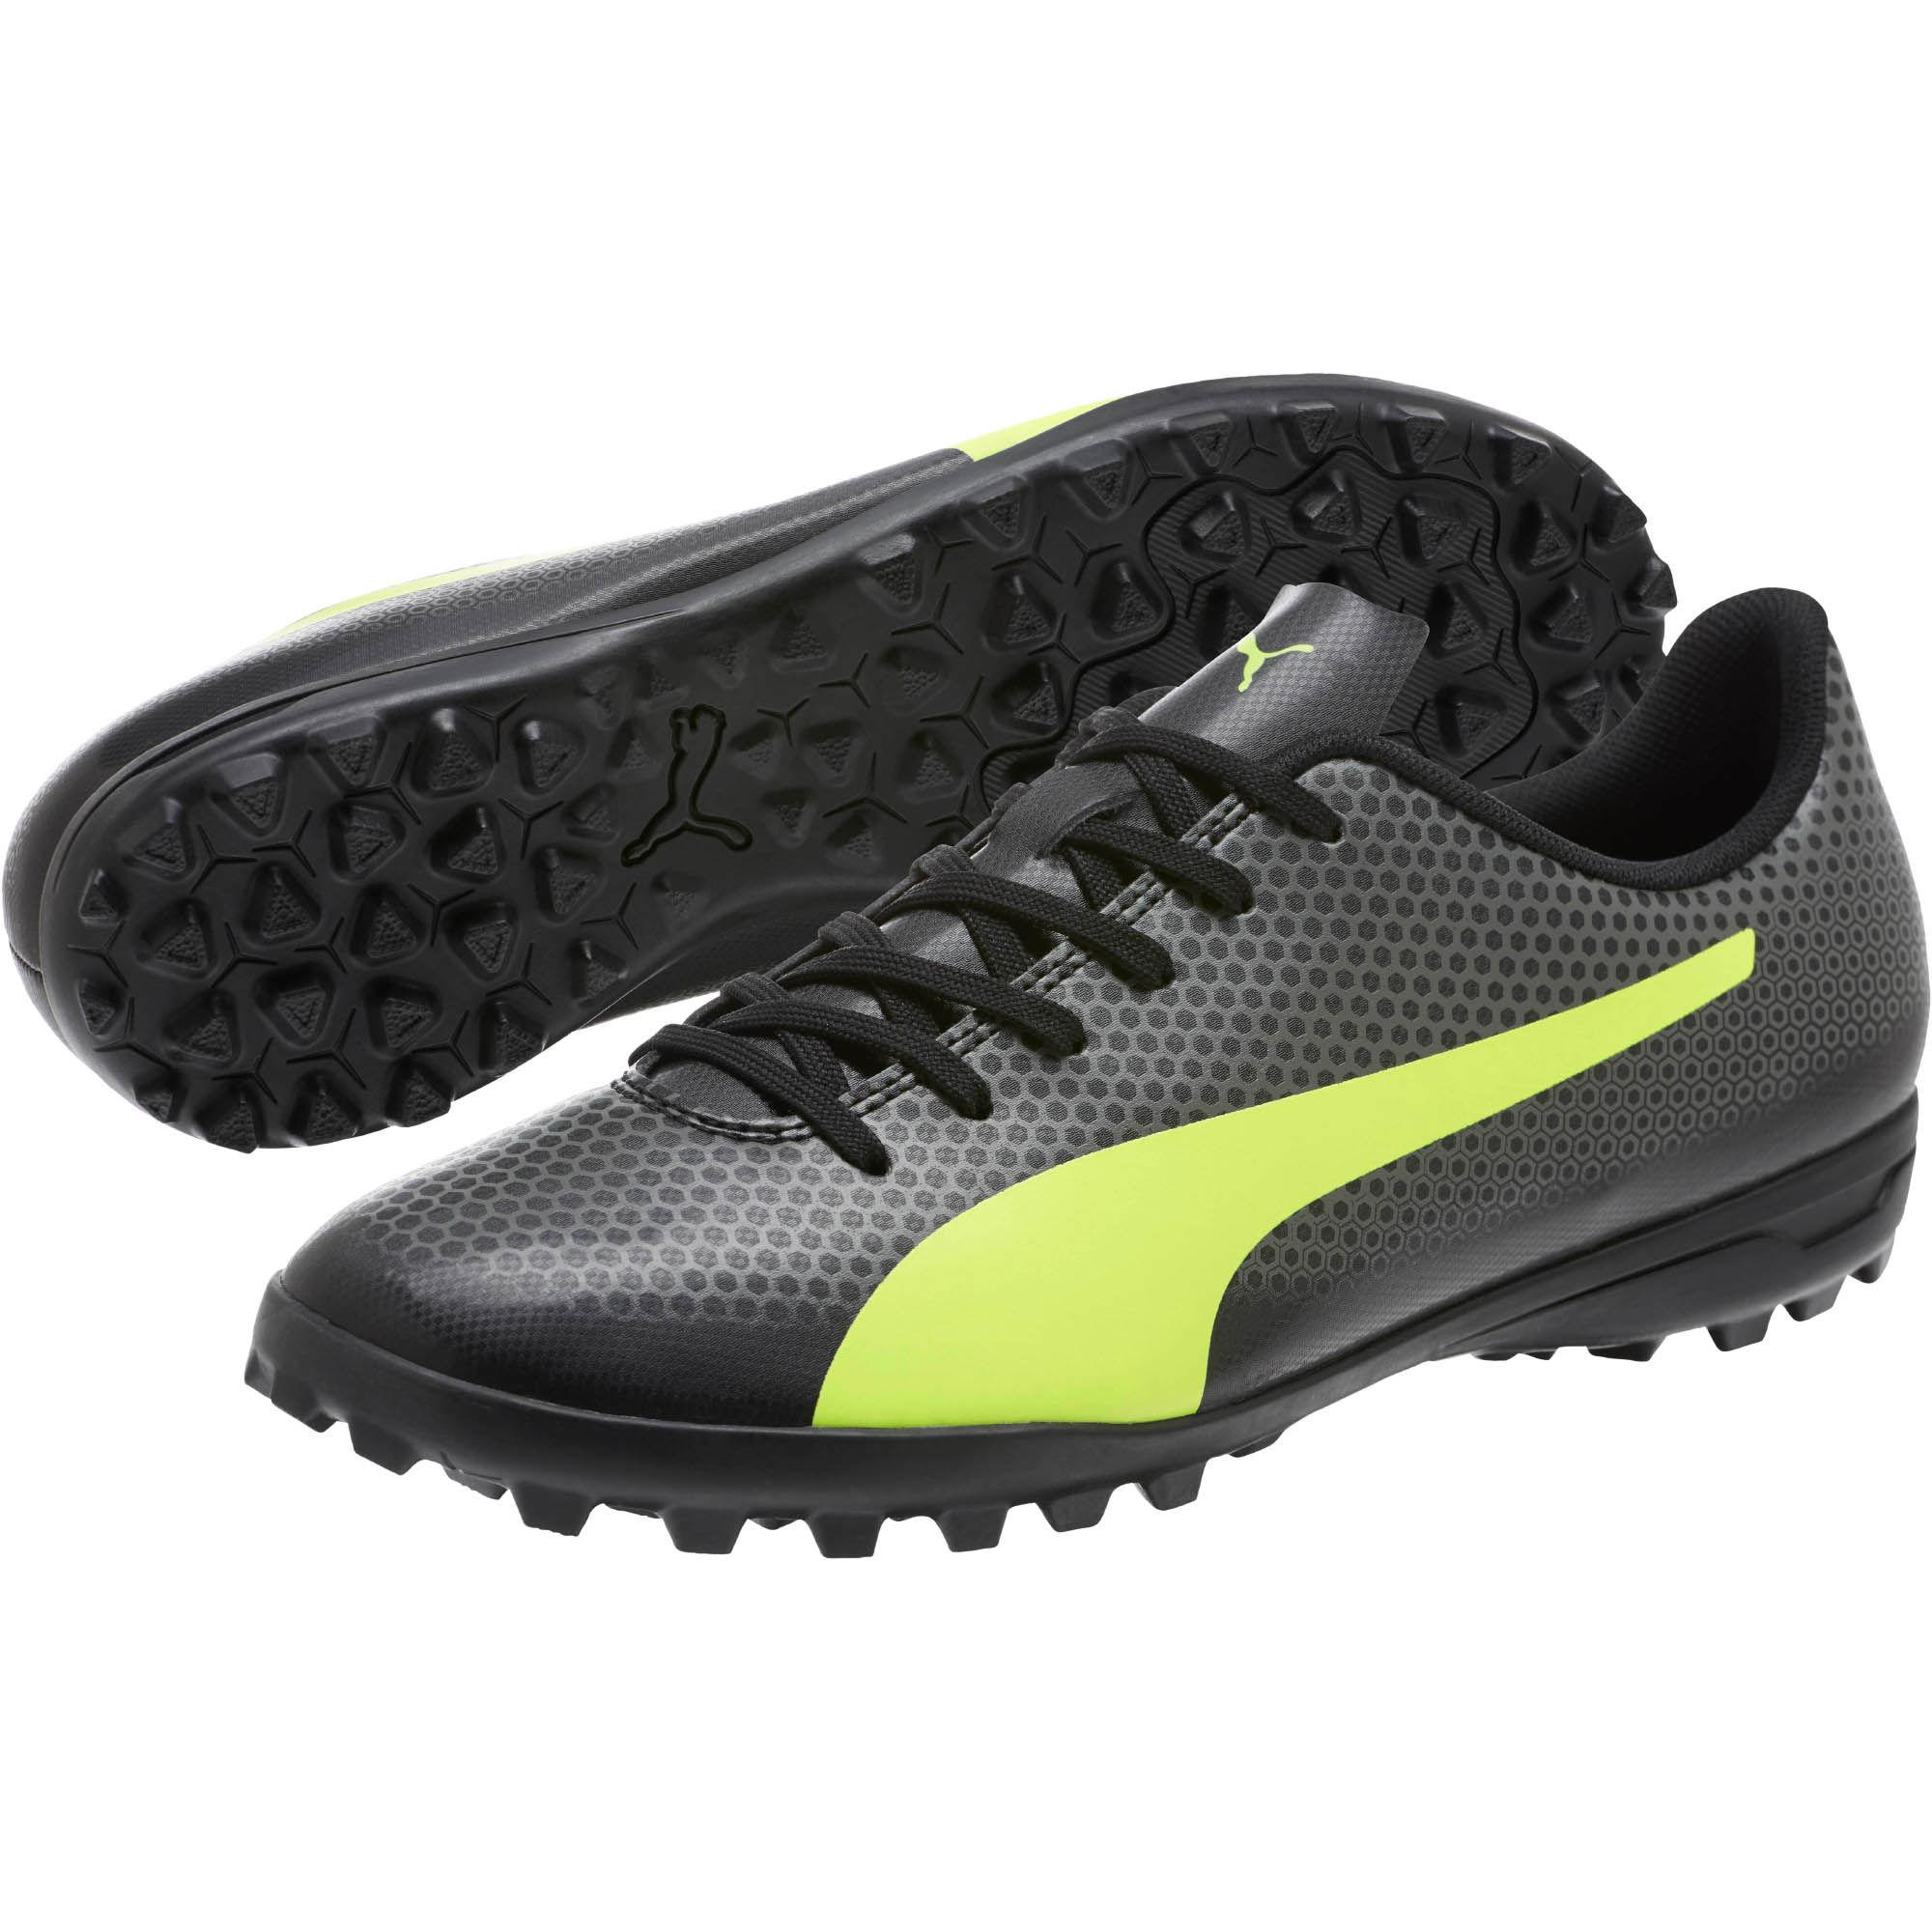 4ef58e8151c0 Lyst - PUMA Spirit Tt Turf Soccer Shoes in Black for Men